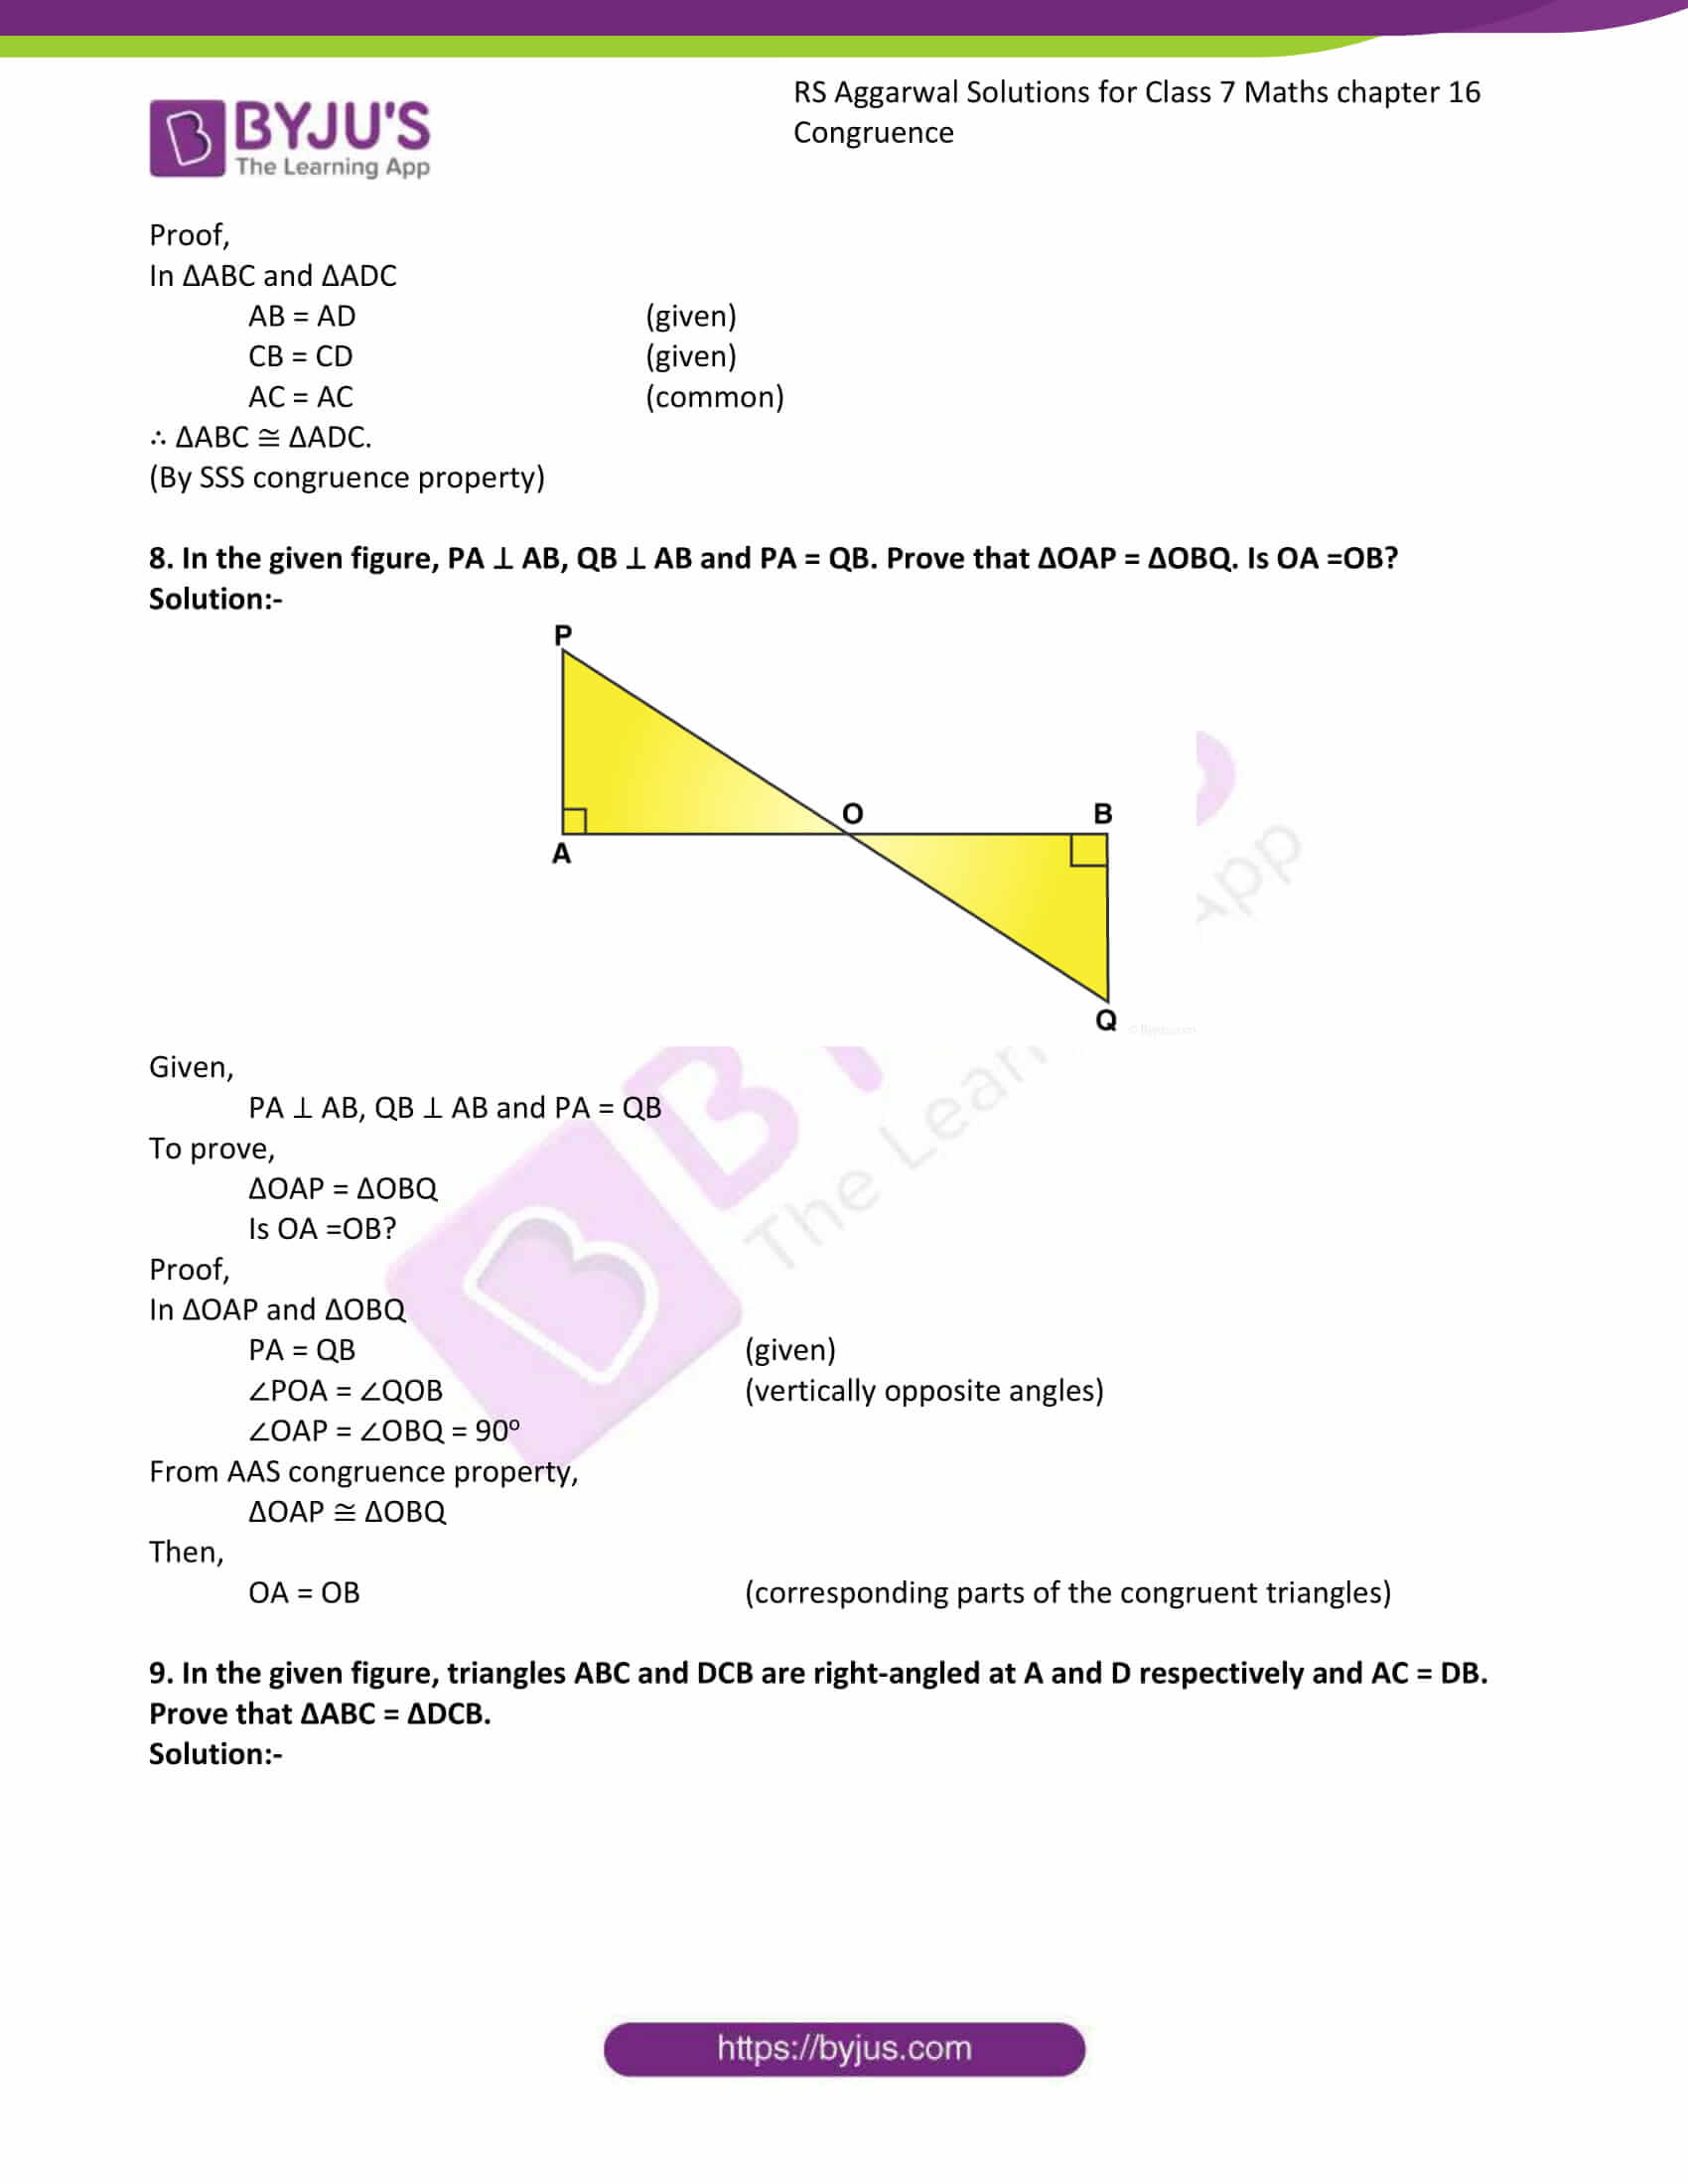 RS Aggarwal Solutions Class 7 Maths Chapter 16 Congruence 7